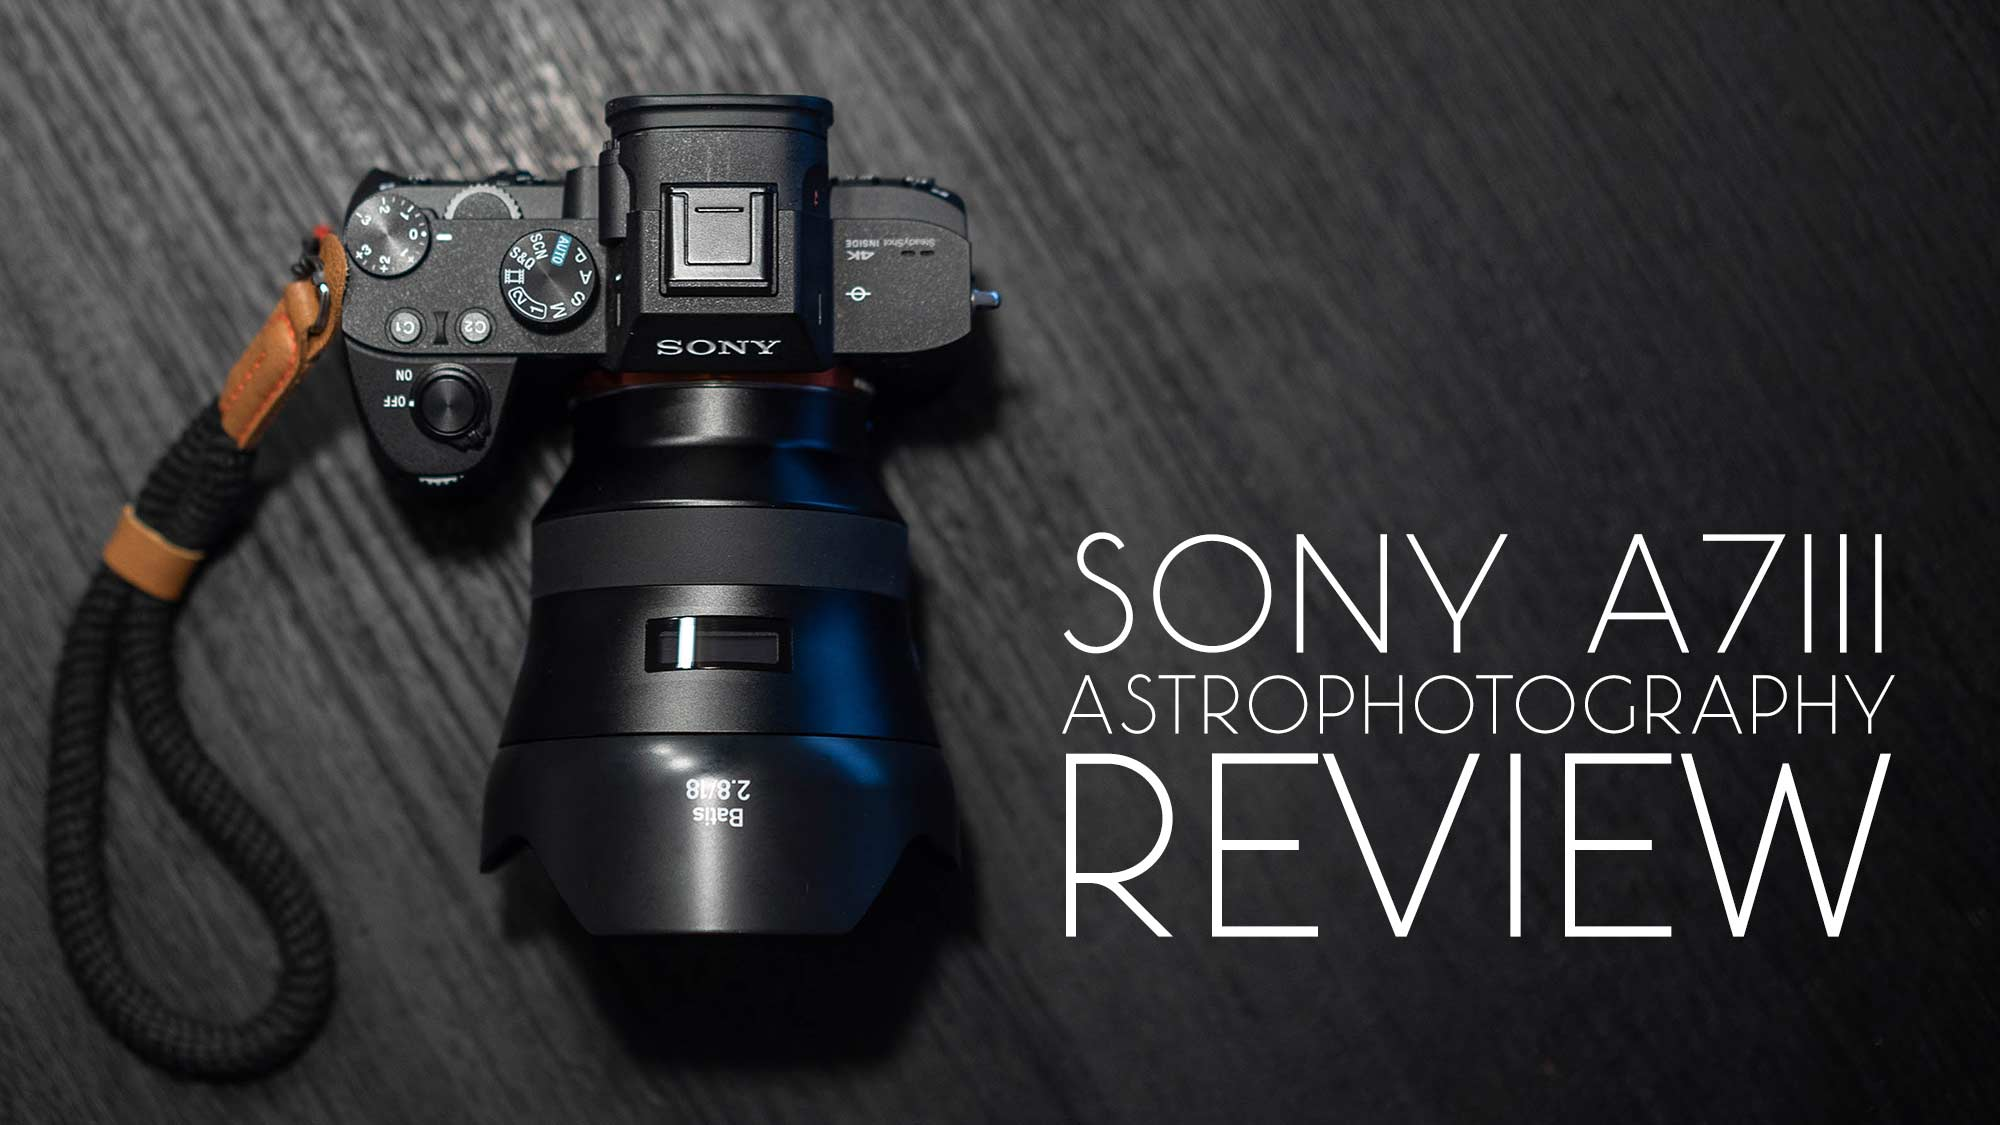 Sony a7III Astrophotography Review